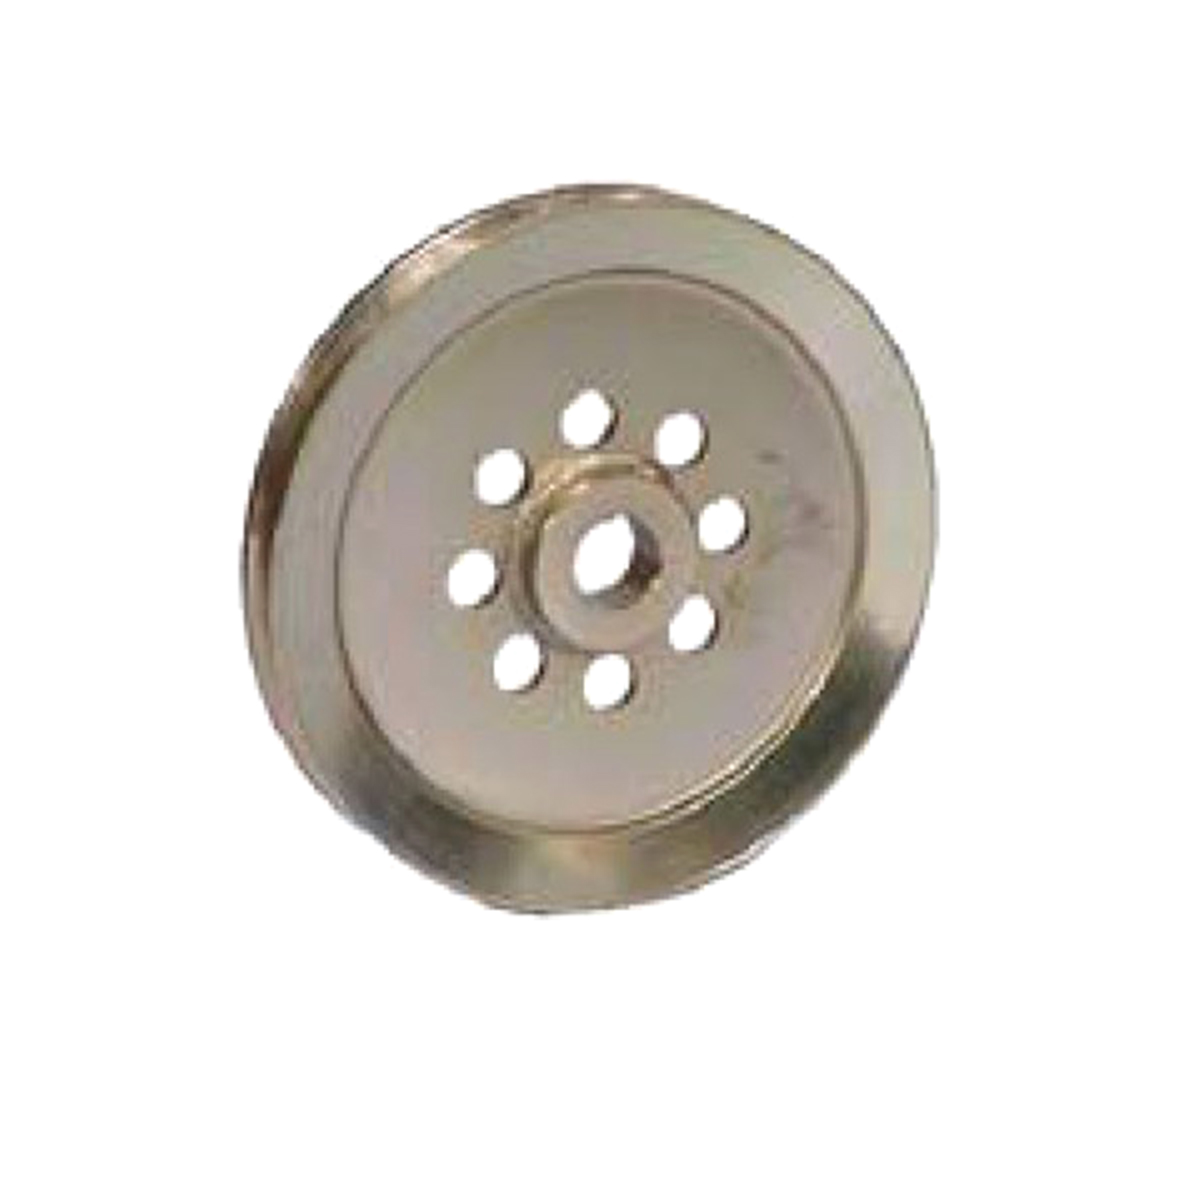 300059 Dixie Chopper Top Center Pulley 7.5